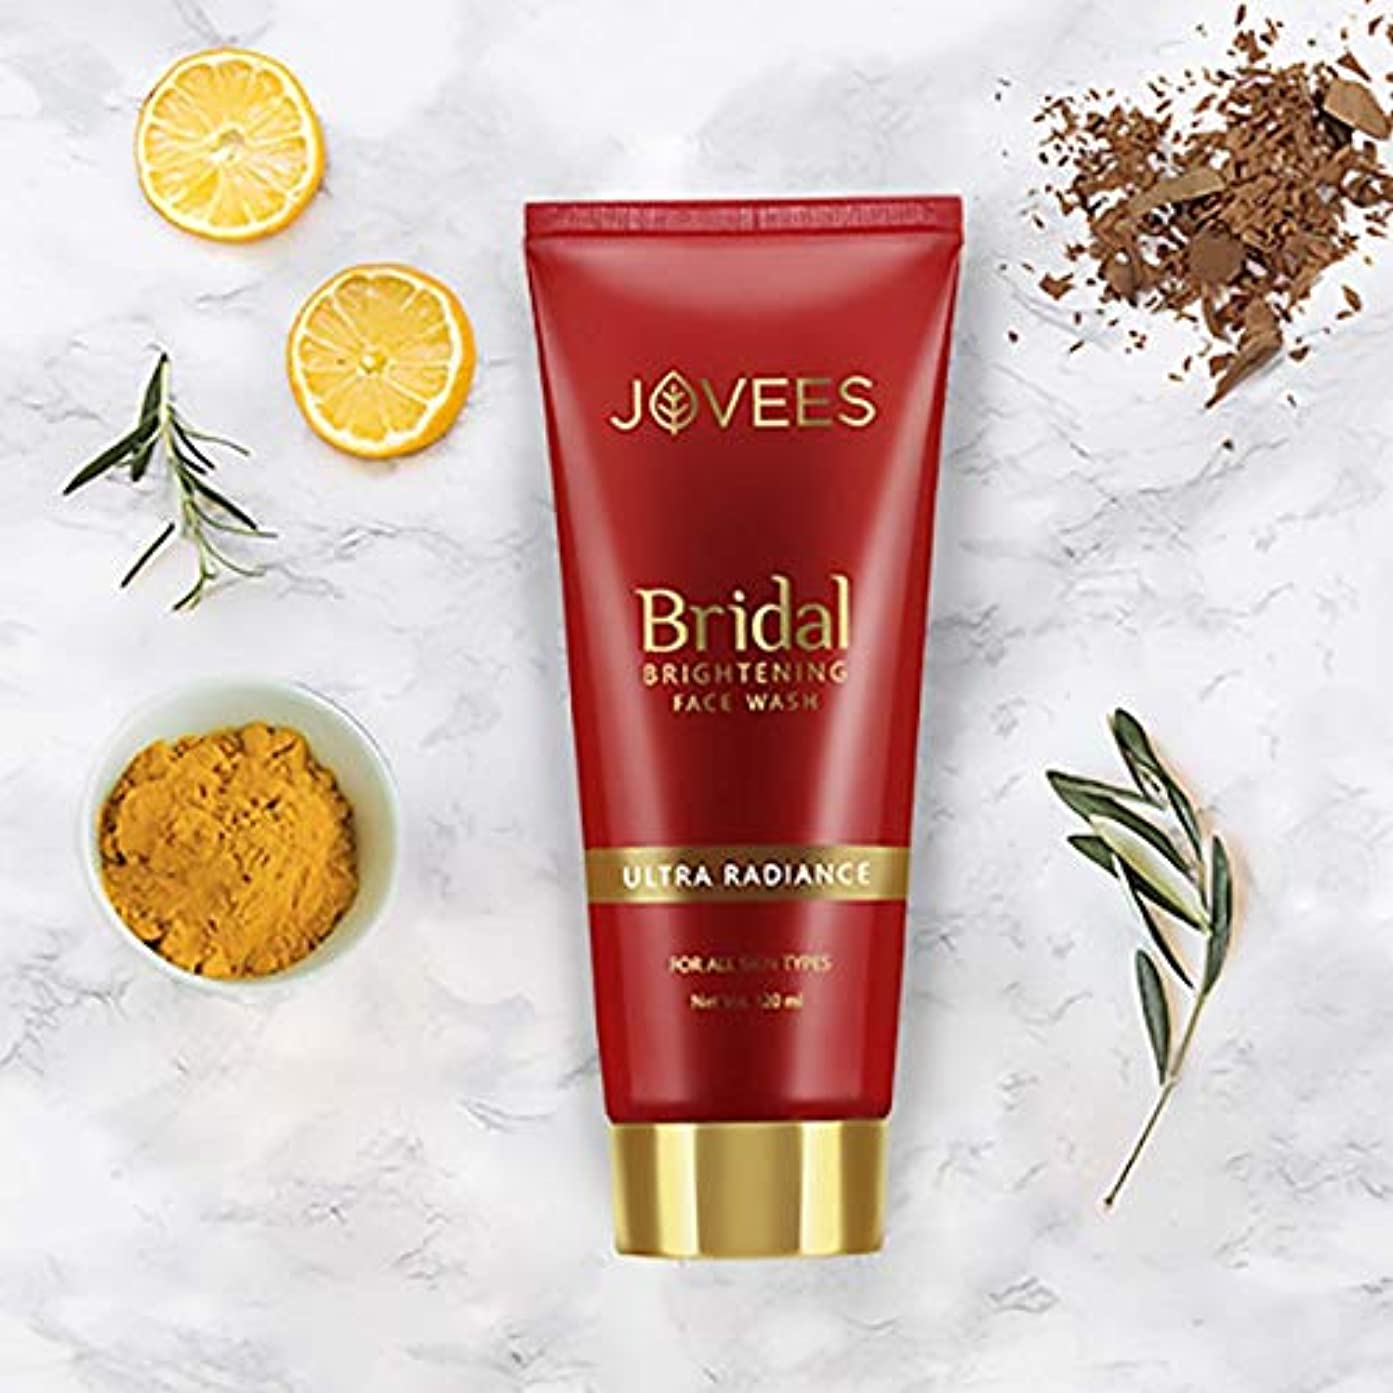 Jovees Bridal Brightening Face Wash 120ml Ultra Radiance Even & brighter complex